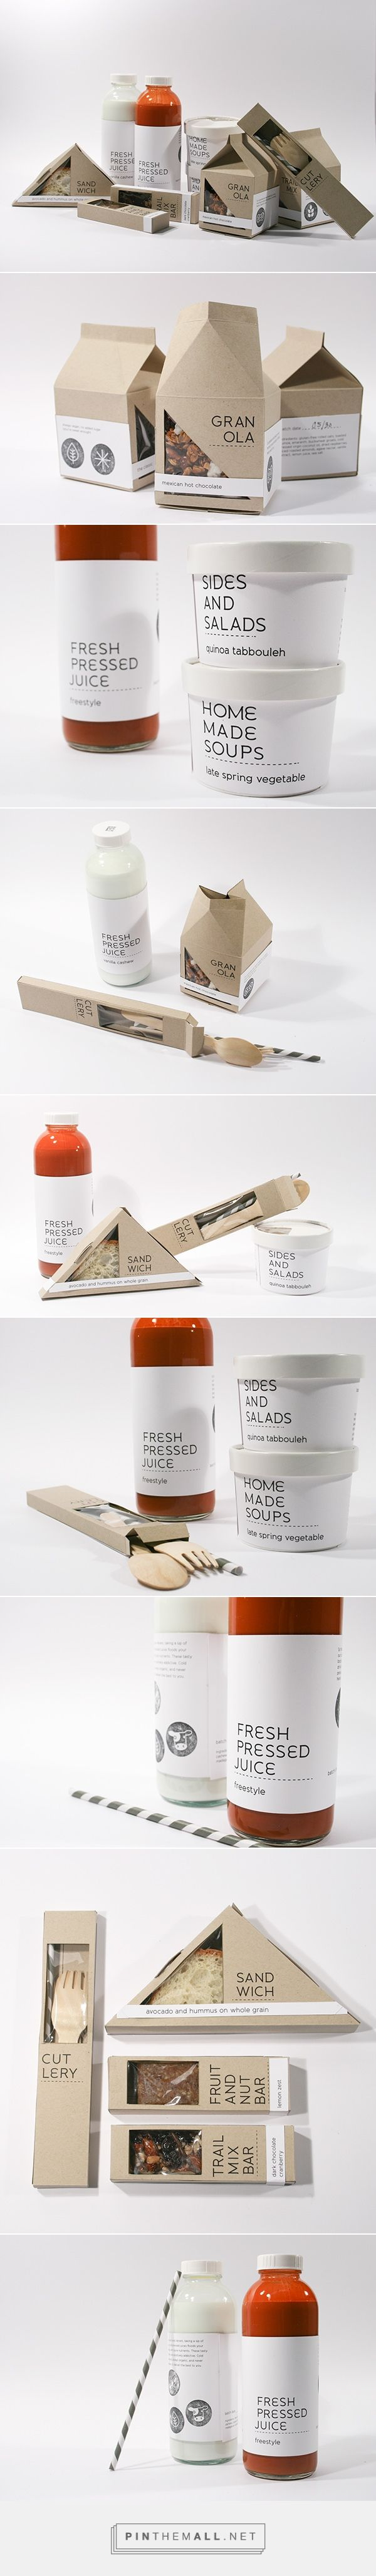 New Leaf Packaging Branding on Behance by Joy Allen curated by Packaging Diva PD. Branding and packaging for a fictional market catering to people with food allergies.